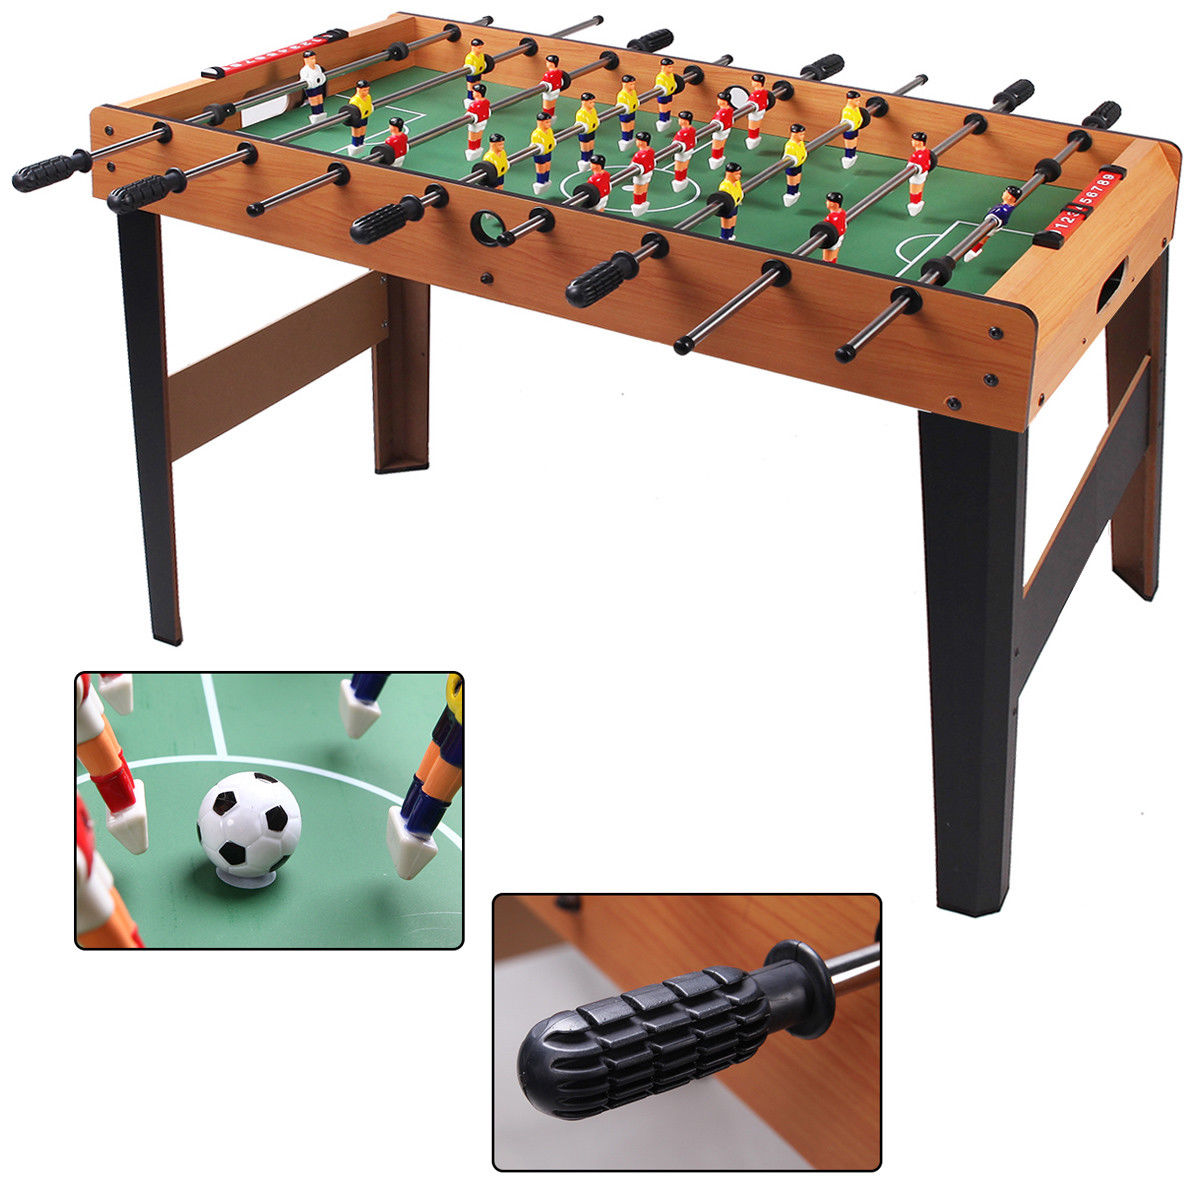 Costway 45'' Foosball Table Arcade Game Christmas Gift Soccer For Kids Indooor Outdoor by Costway